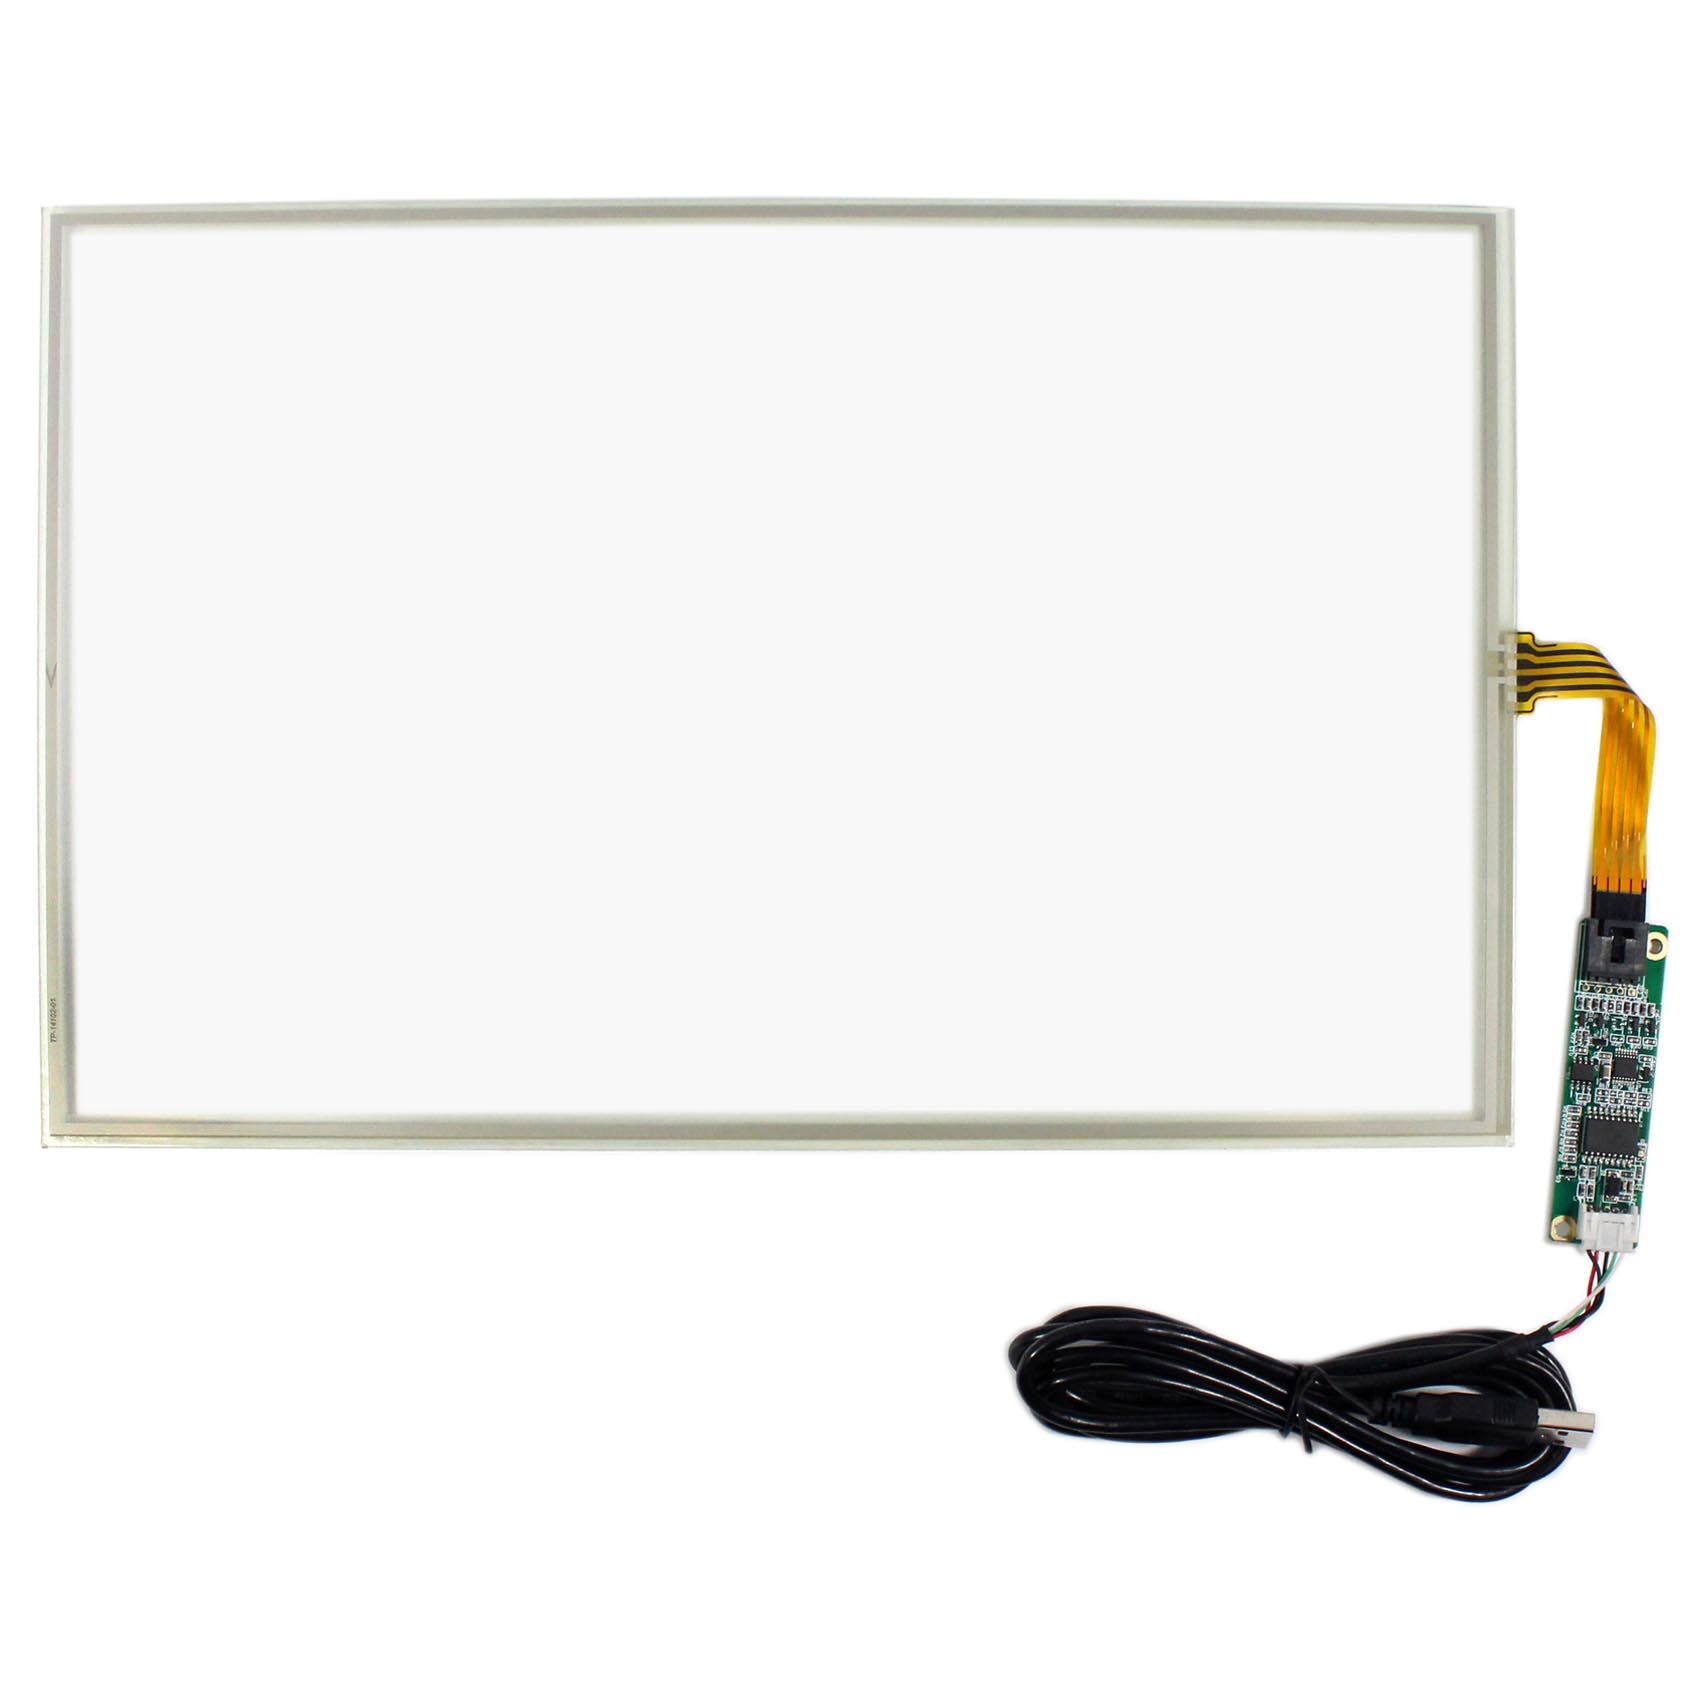 14 1 Resistive Touch Panel For 14 1 X800 Lcd With